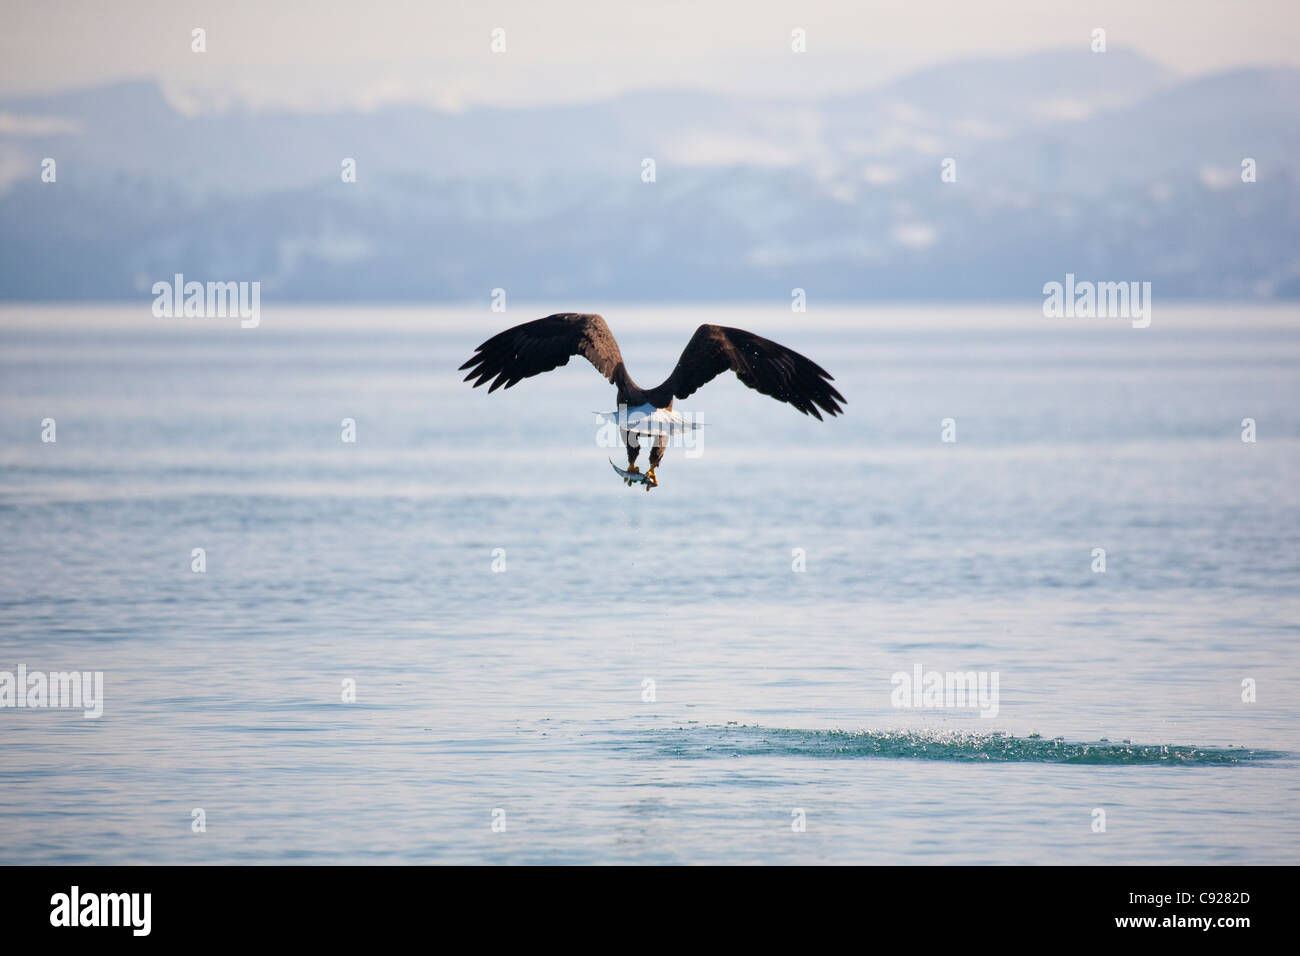 Bald Eagle flying away over the ocean with herring in its talons, Prince William Sound, Southcentral Alaska, Spring - Stock Image